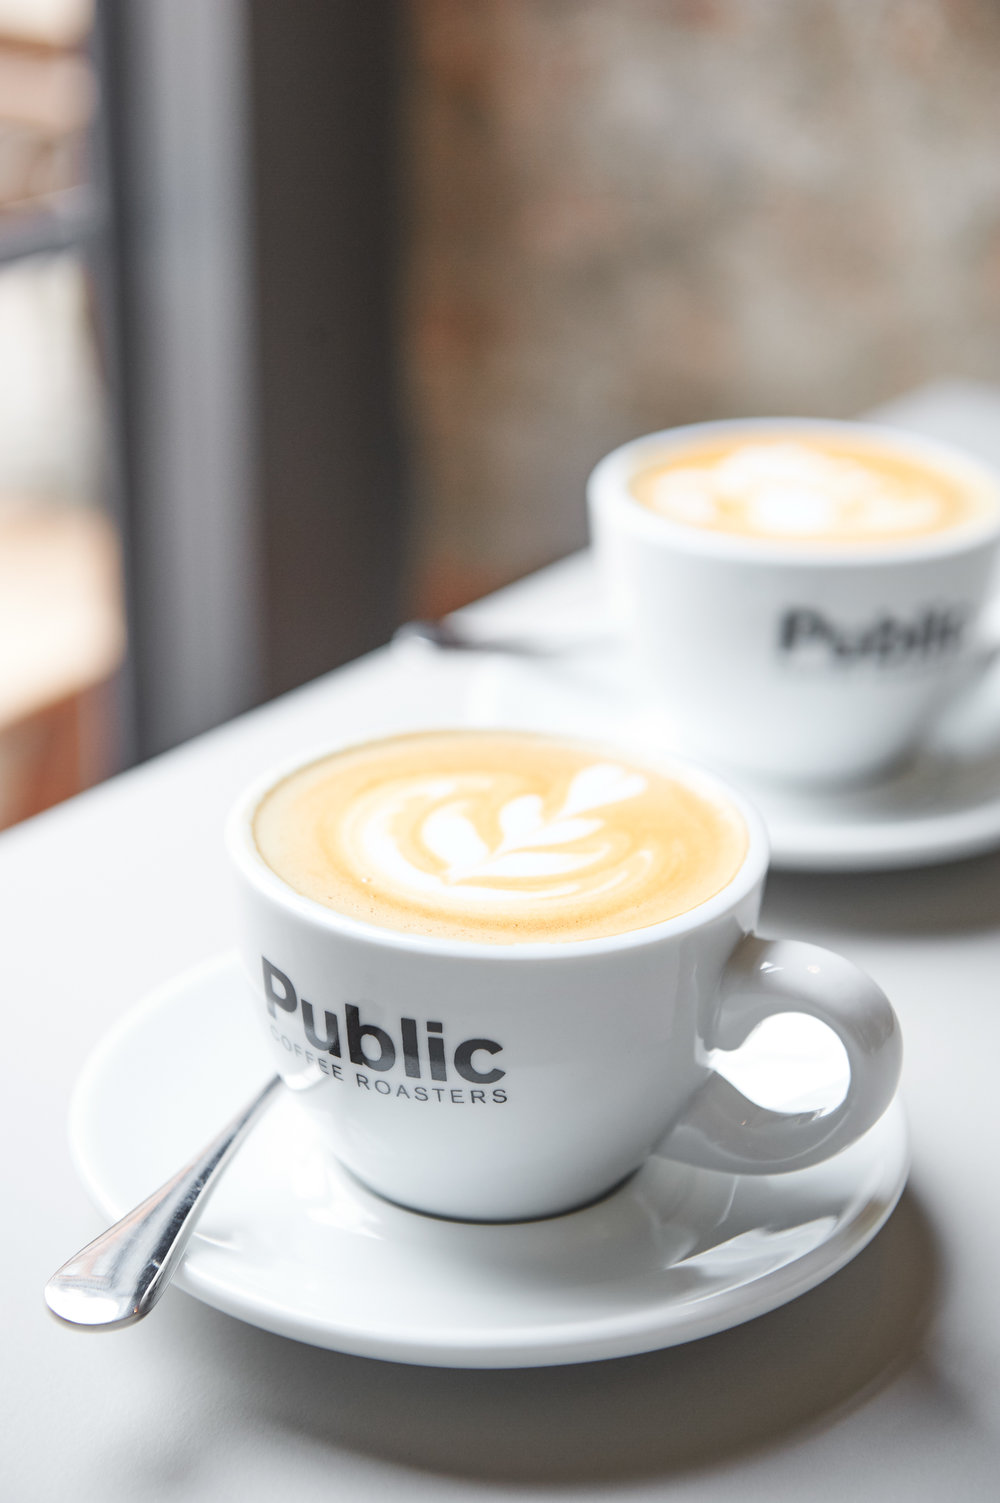 Public_Coffee_Roasters_New_11.jpg